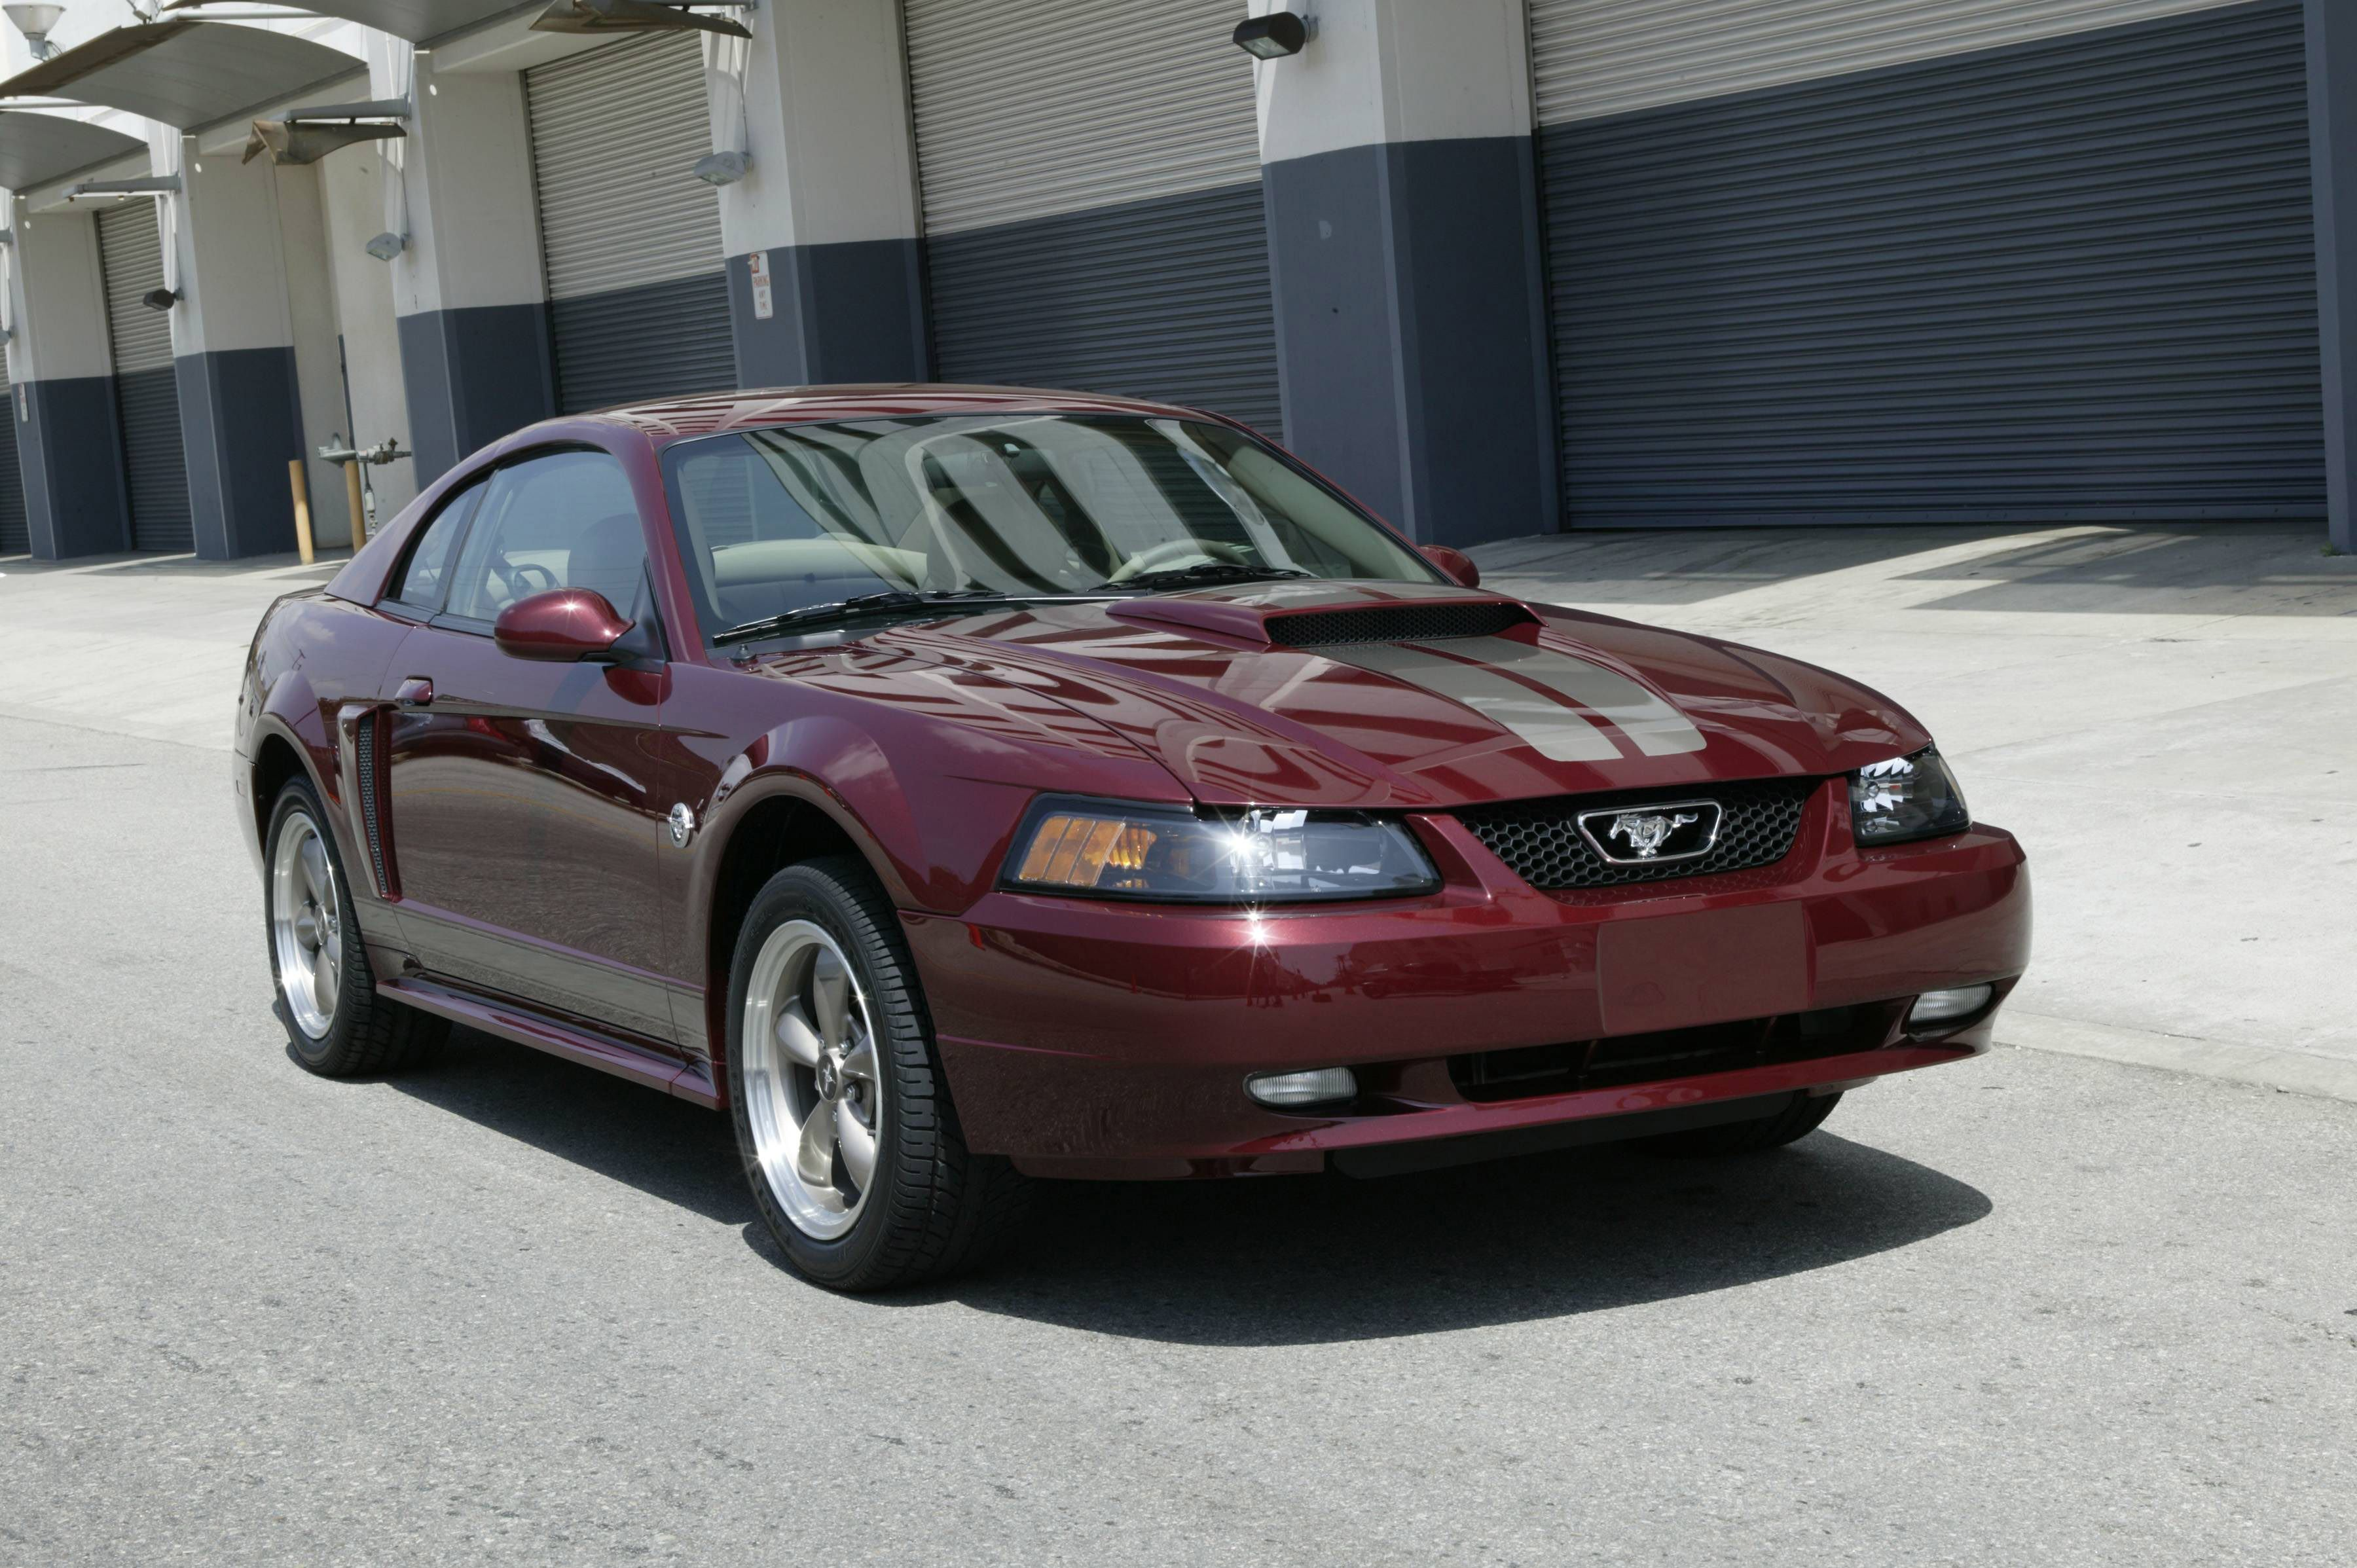 2004 Ford Mustang Gt In 2020 2004 Ford Mustang Ford Mustang Gt Mustang Coupe